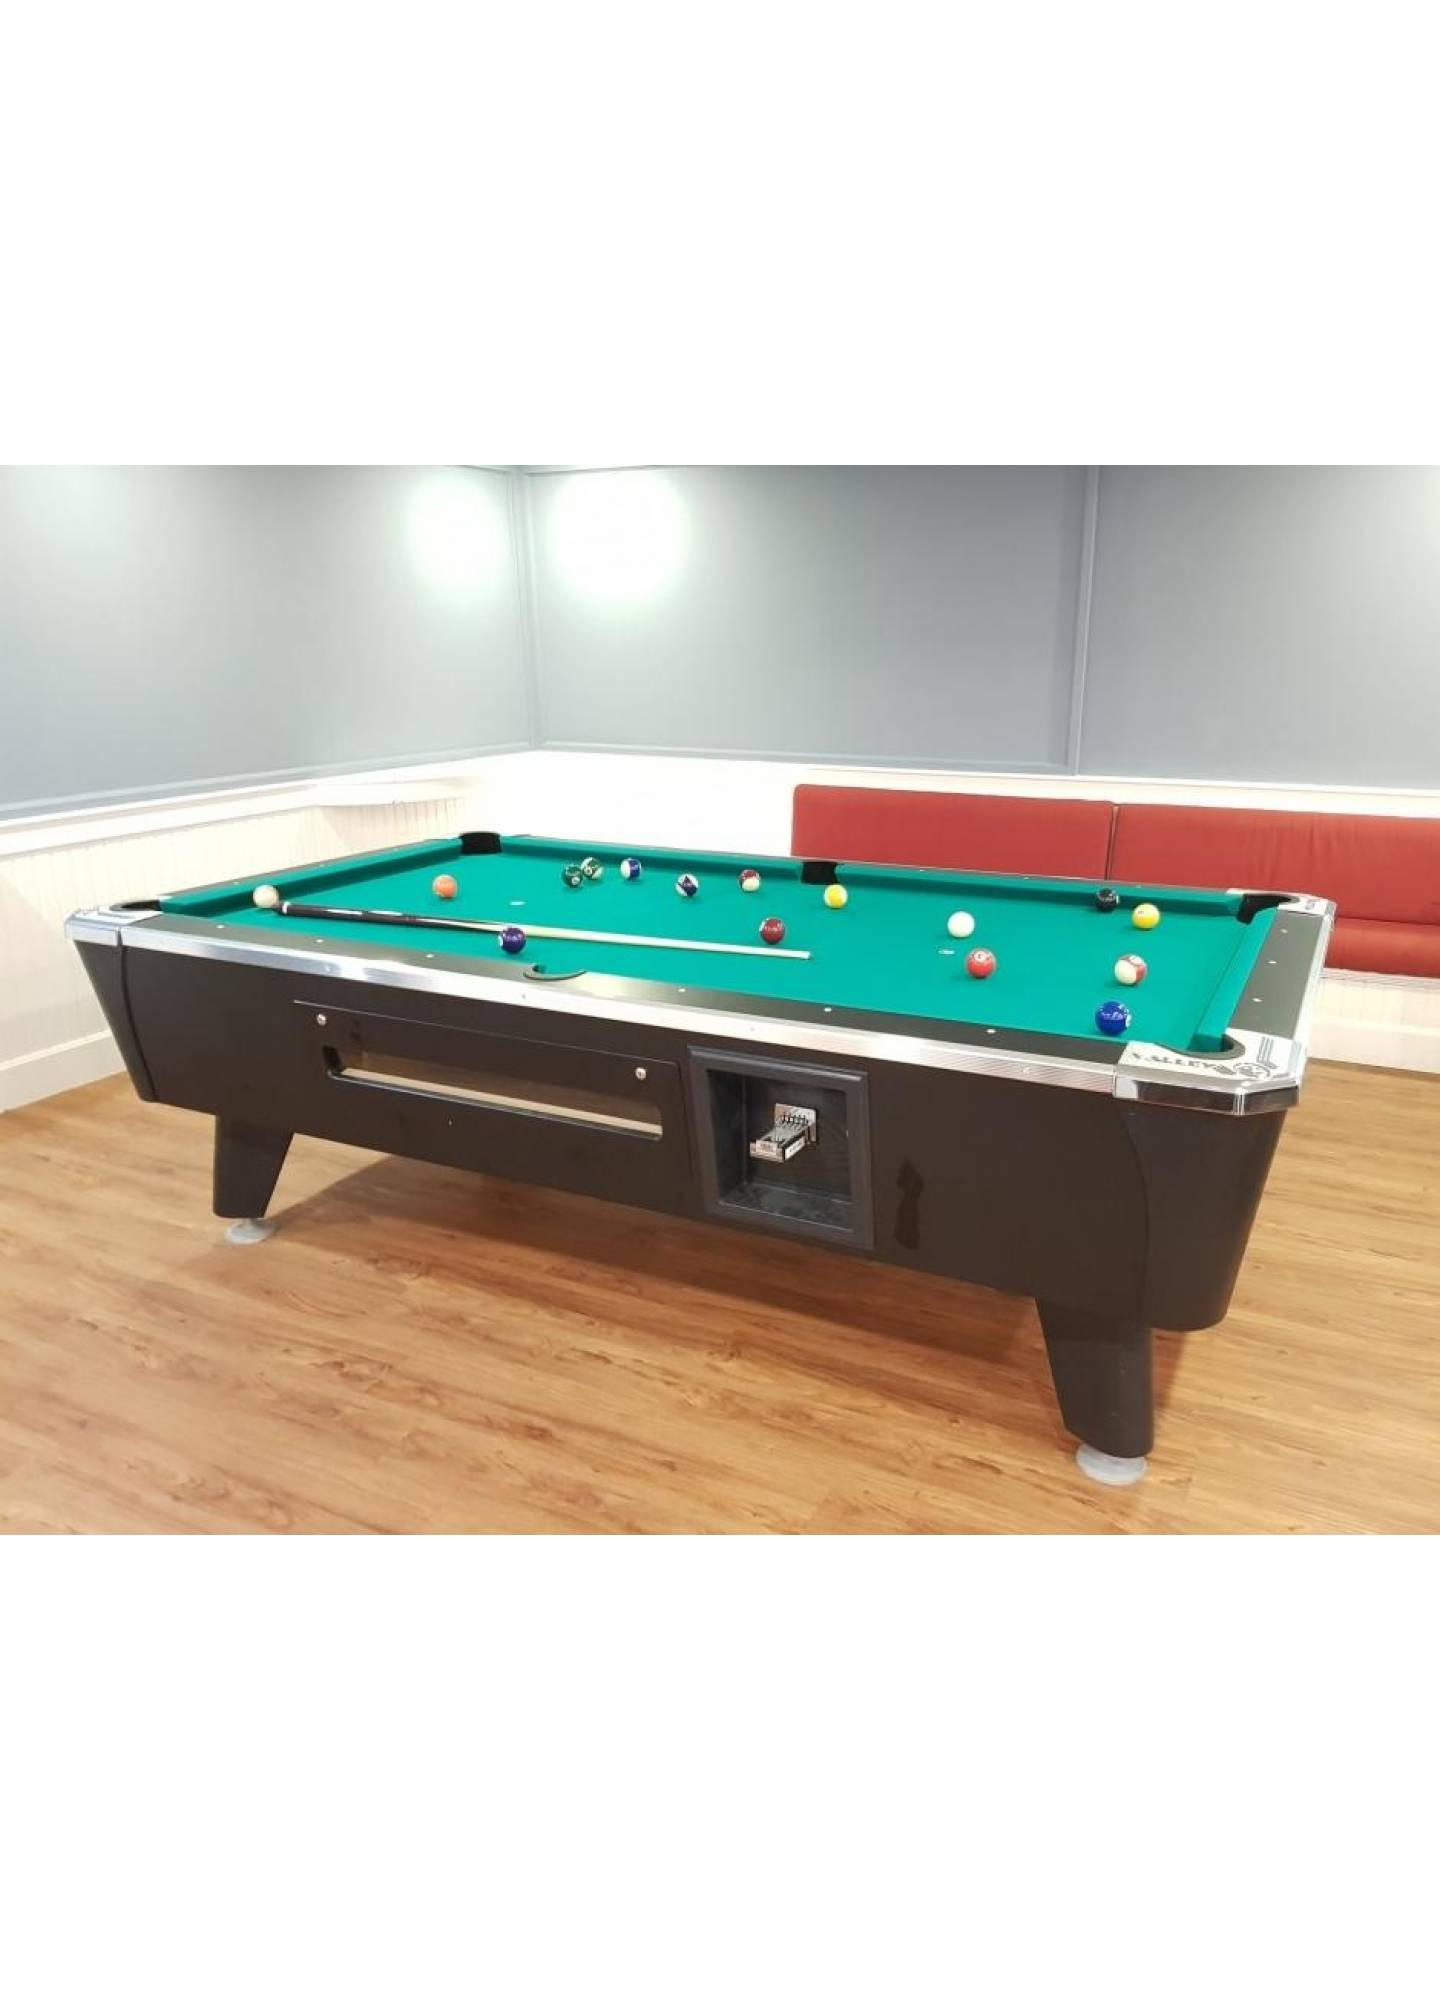 VALLEY DYNAMO POOL TABLE (FREE PLAY / COIN-OPERATED)